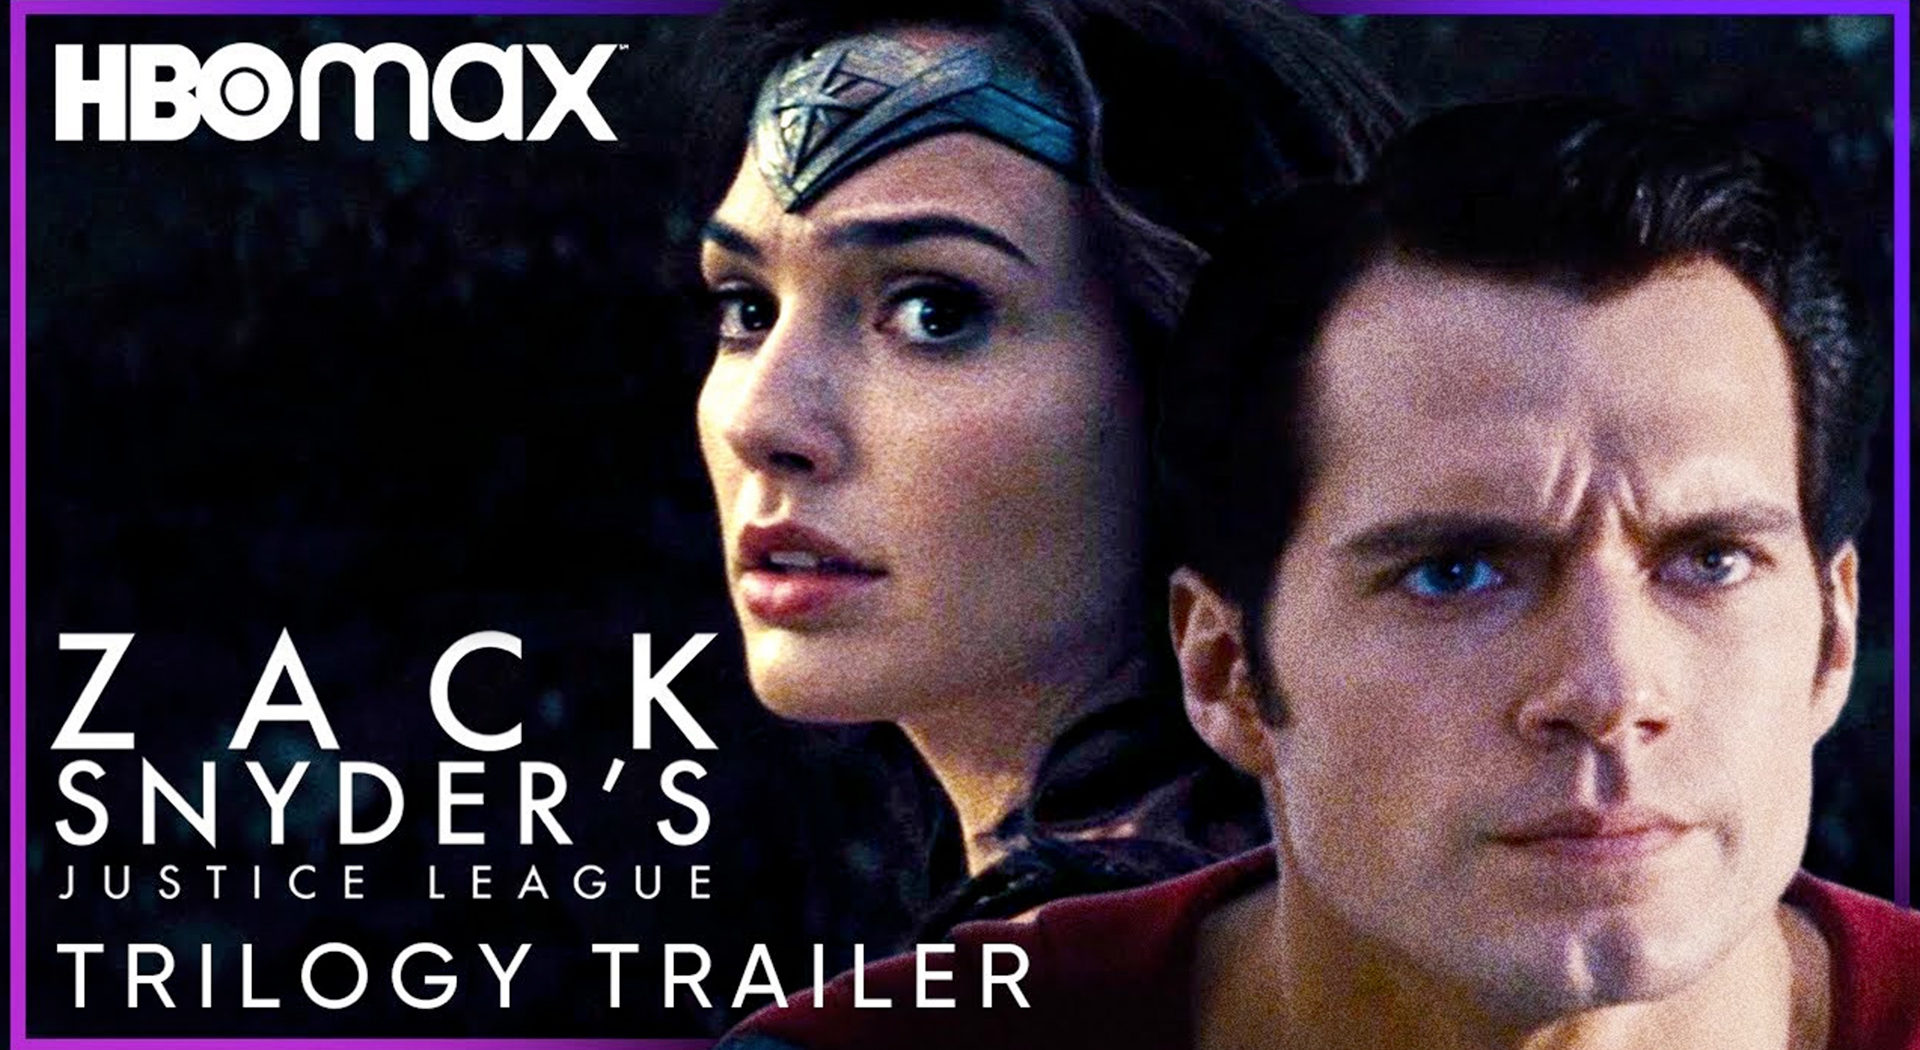 HBO Max Zack Snyder Trilogy Trailer